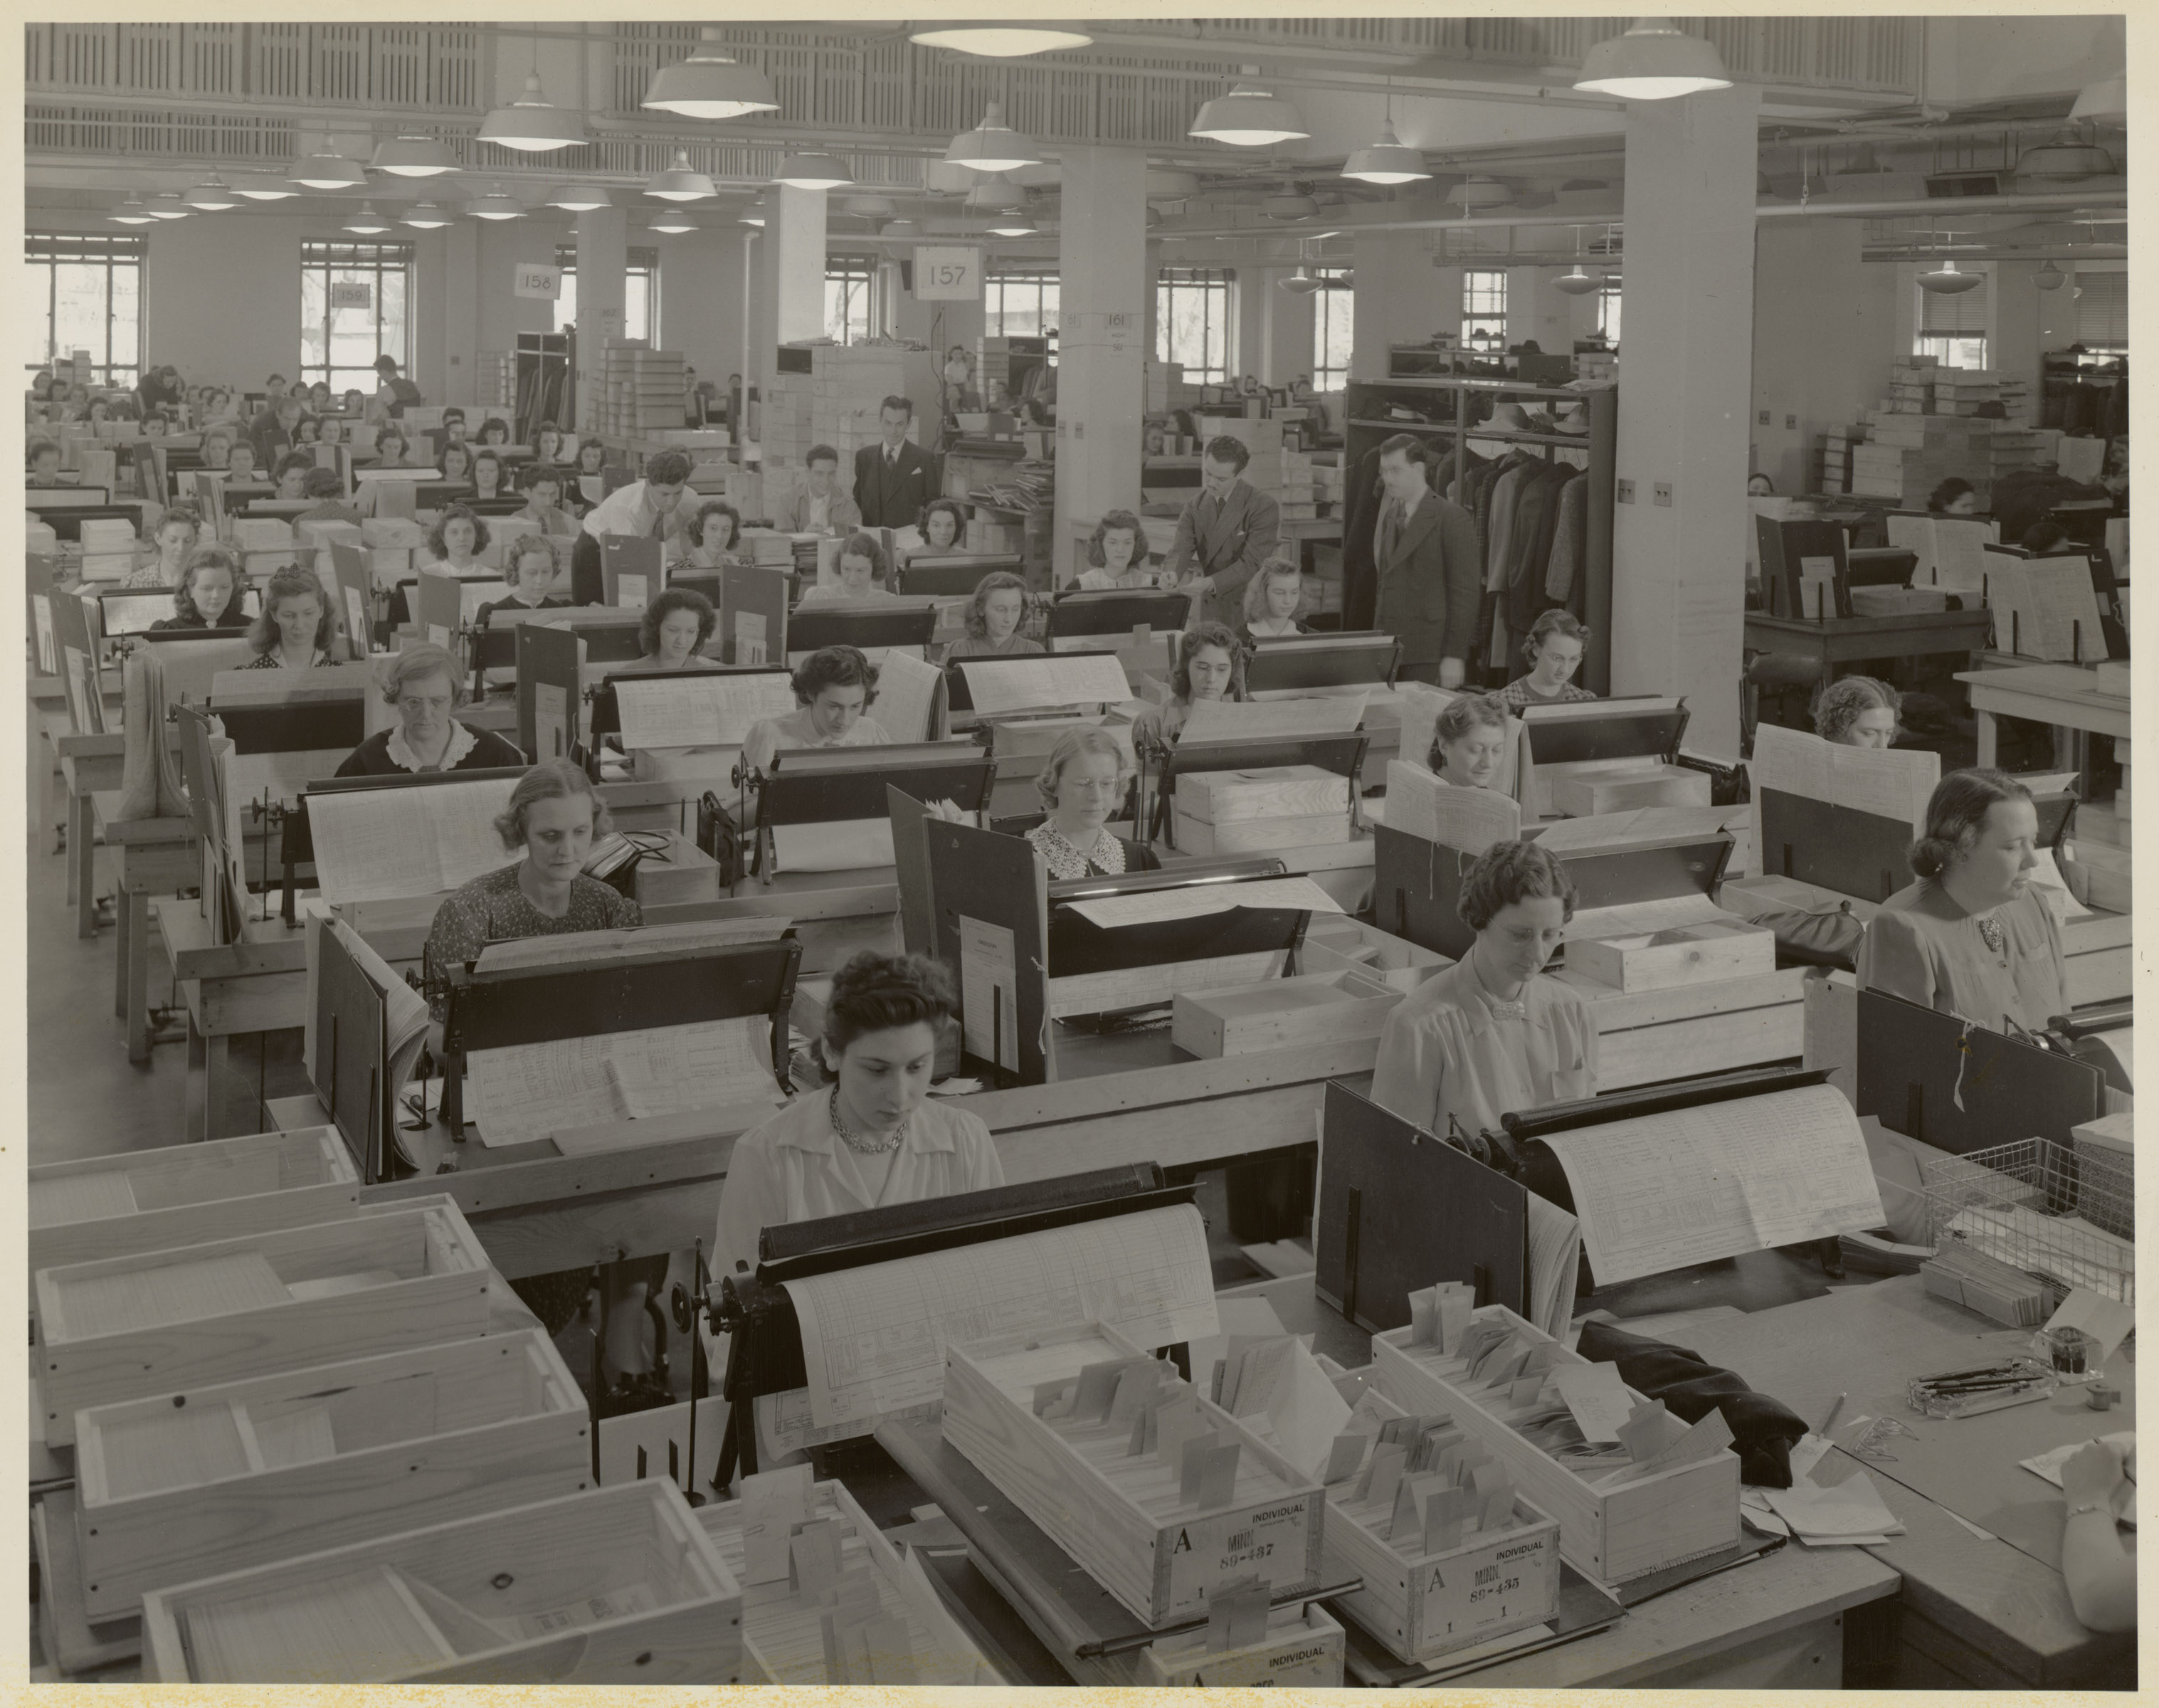 Original caption: Card Punch Operators working on population cards. A total of 2,400 punchers were employed and 1,859 punch machines of all types were used in the 1940 Census. National Archives Identifier: 7741405